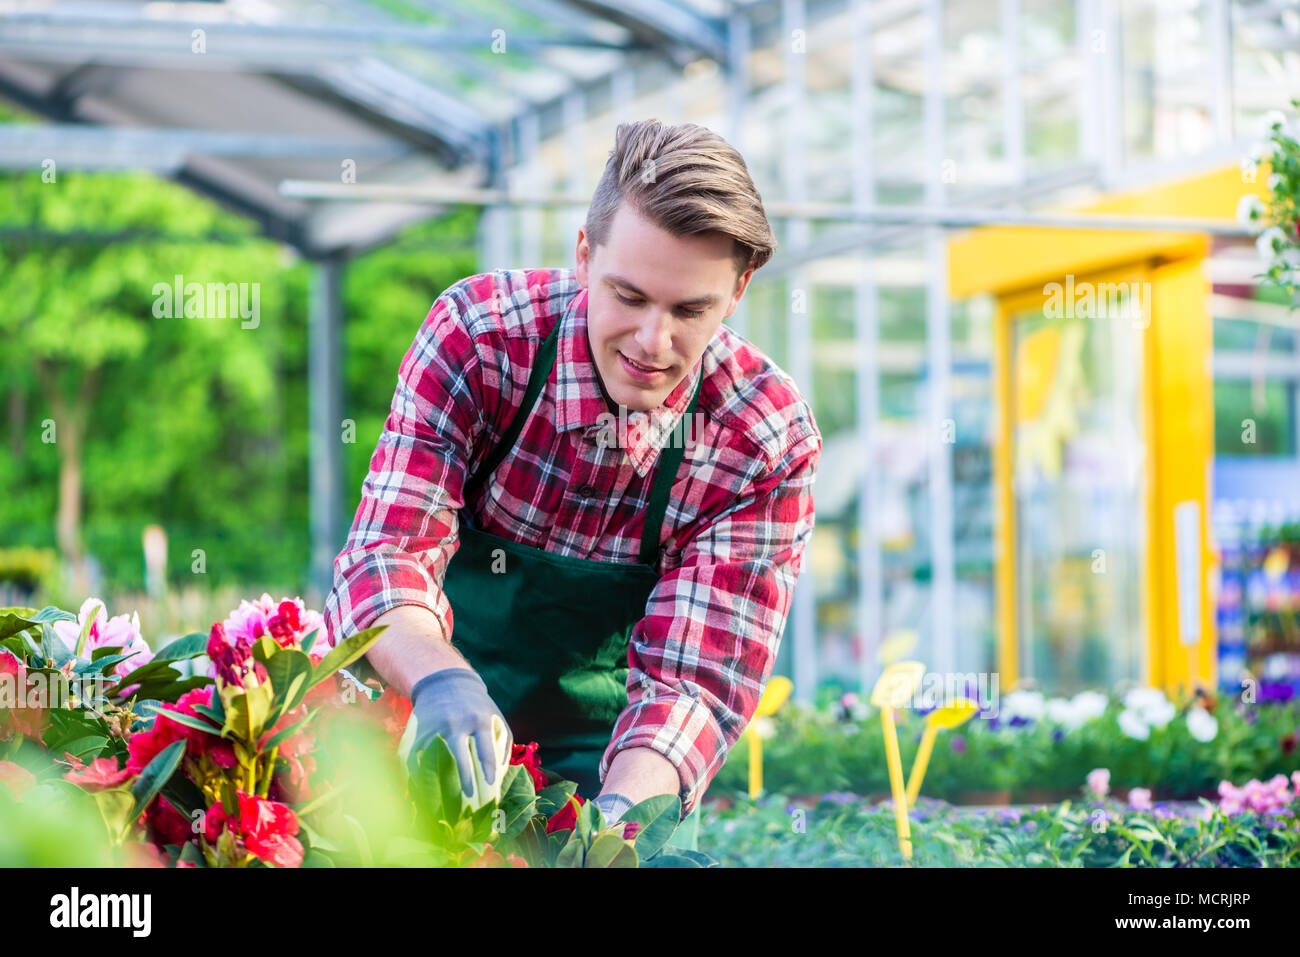 Dedicated florist during work in a modern flower shop - Stock Image